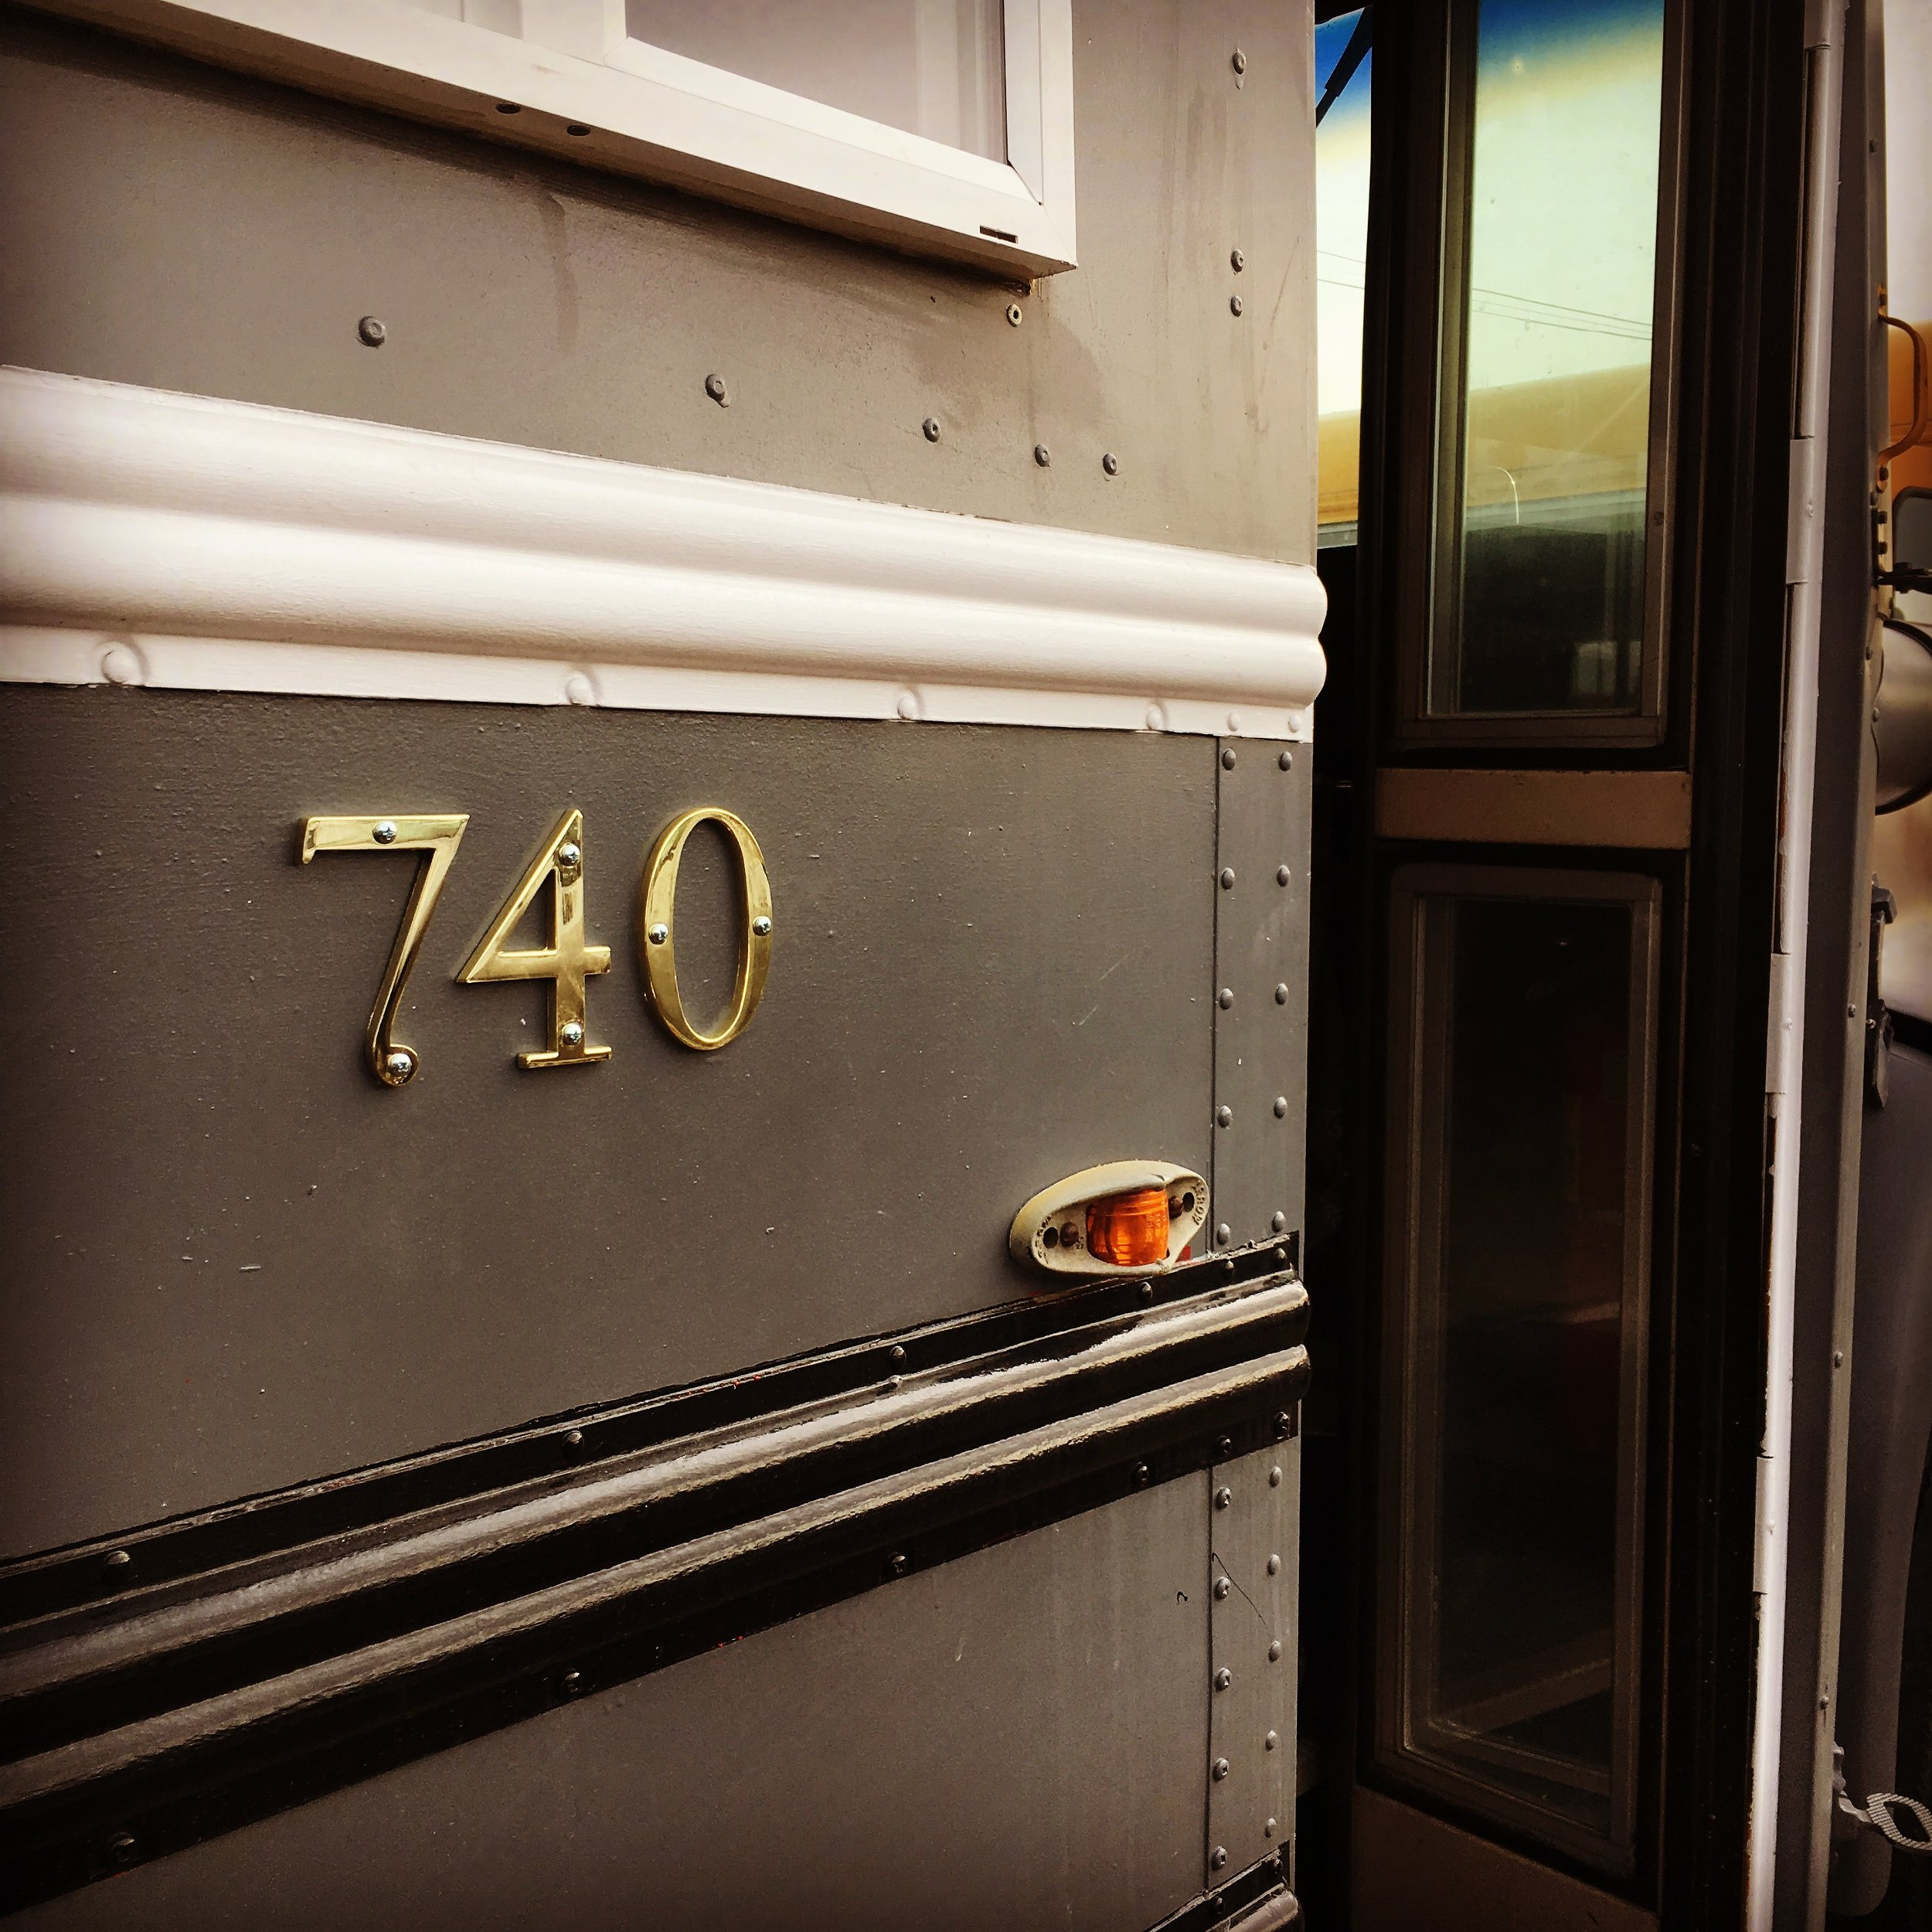 Entrance to Bus #740